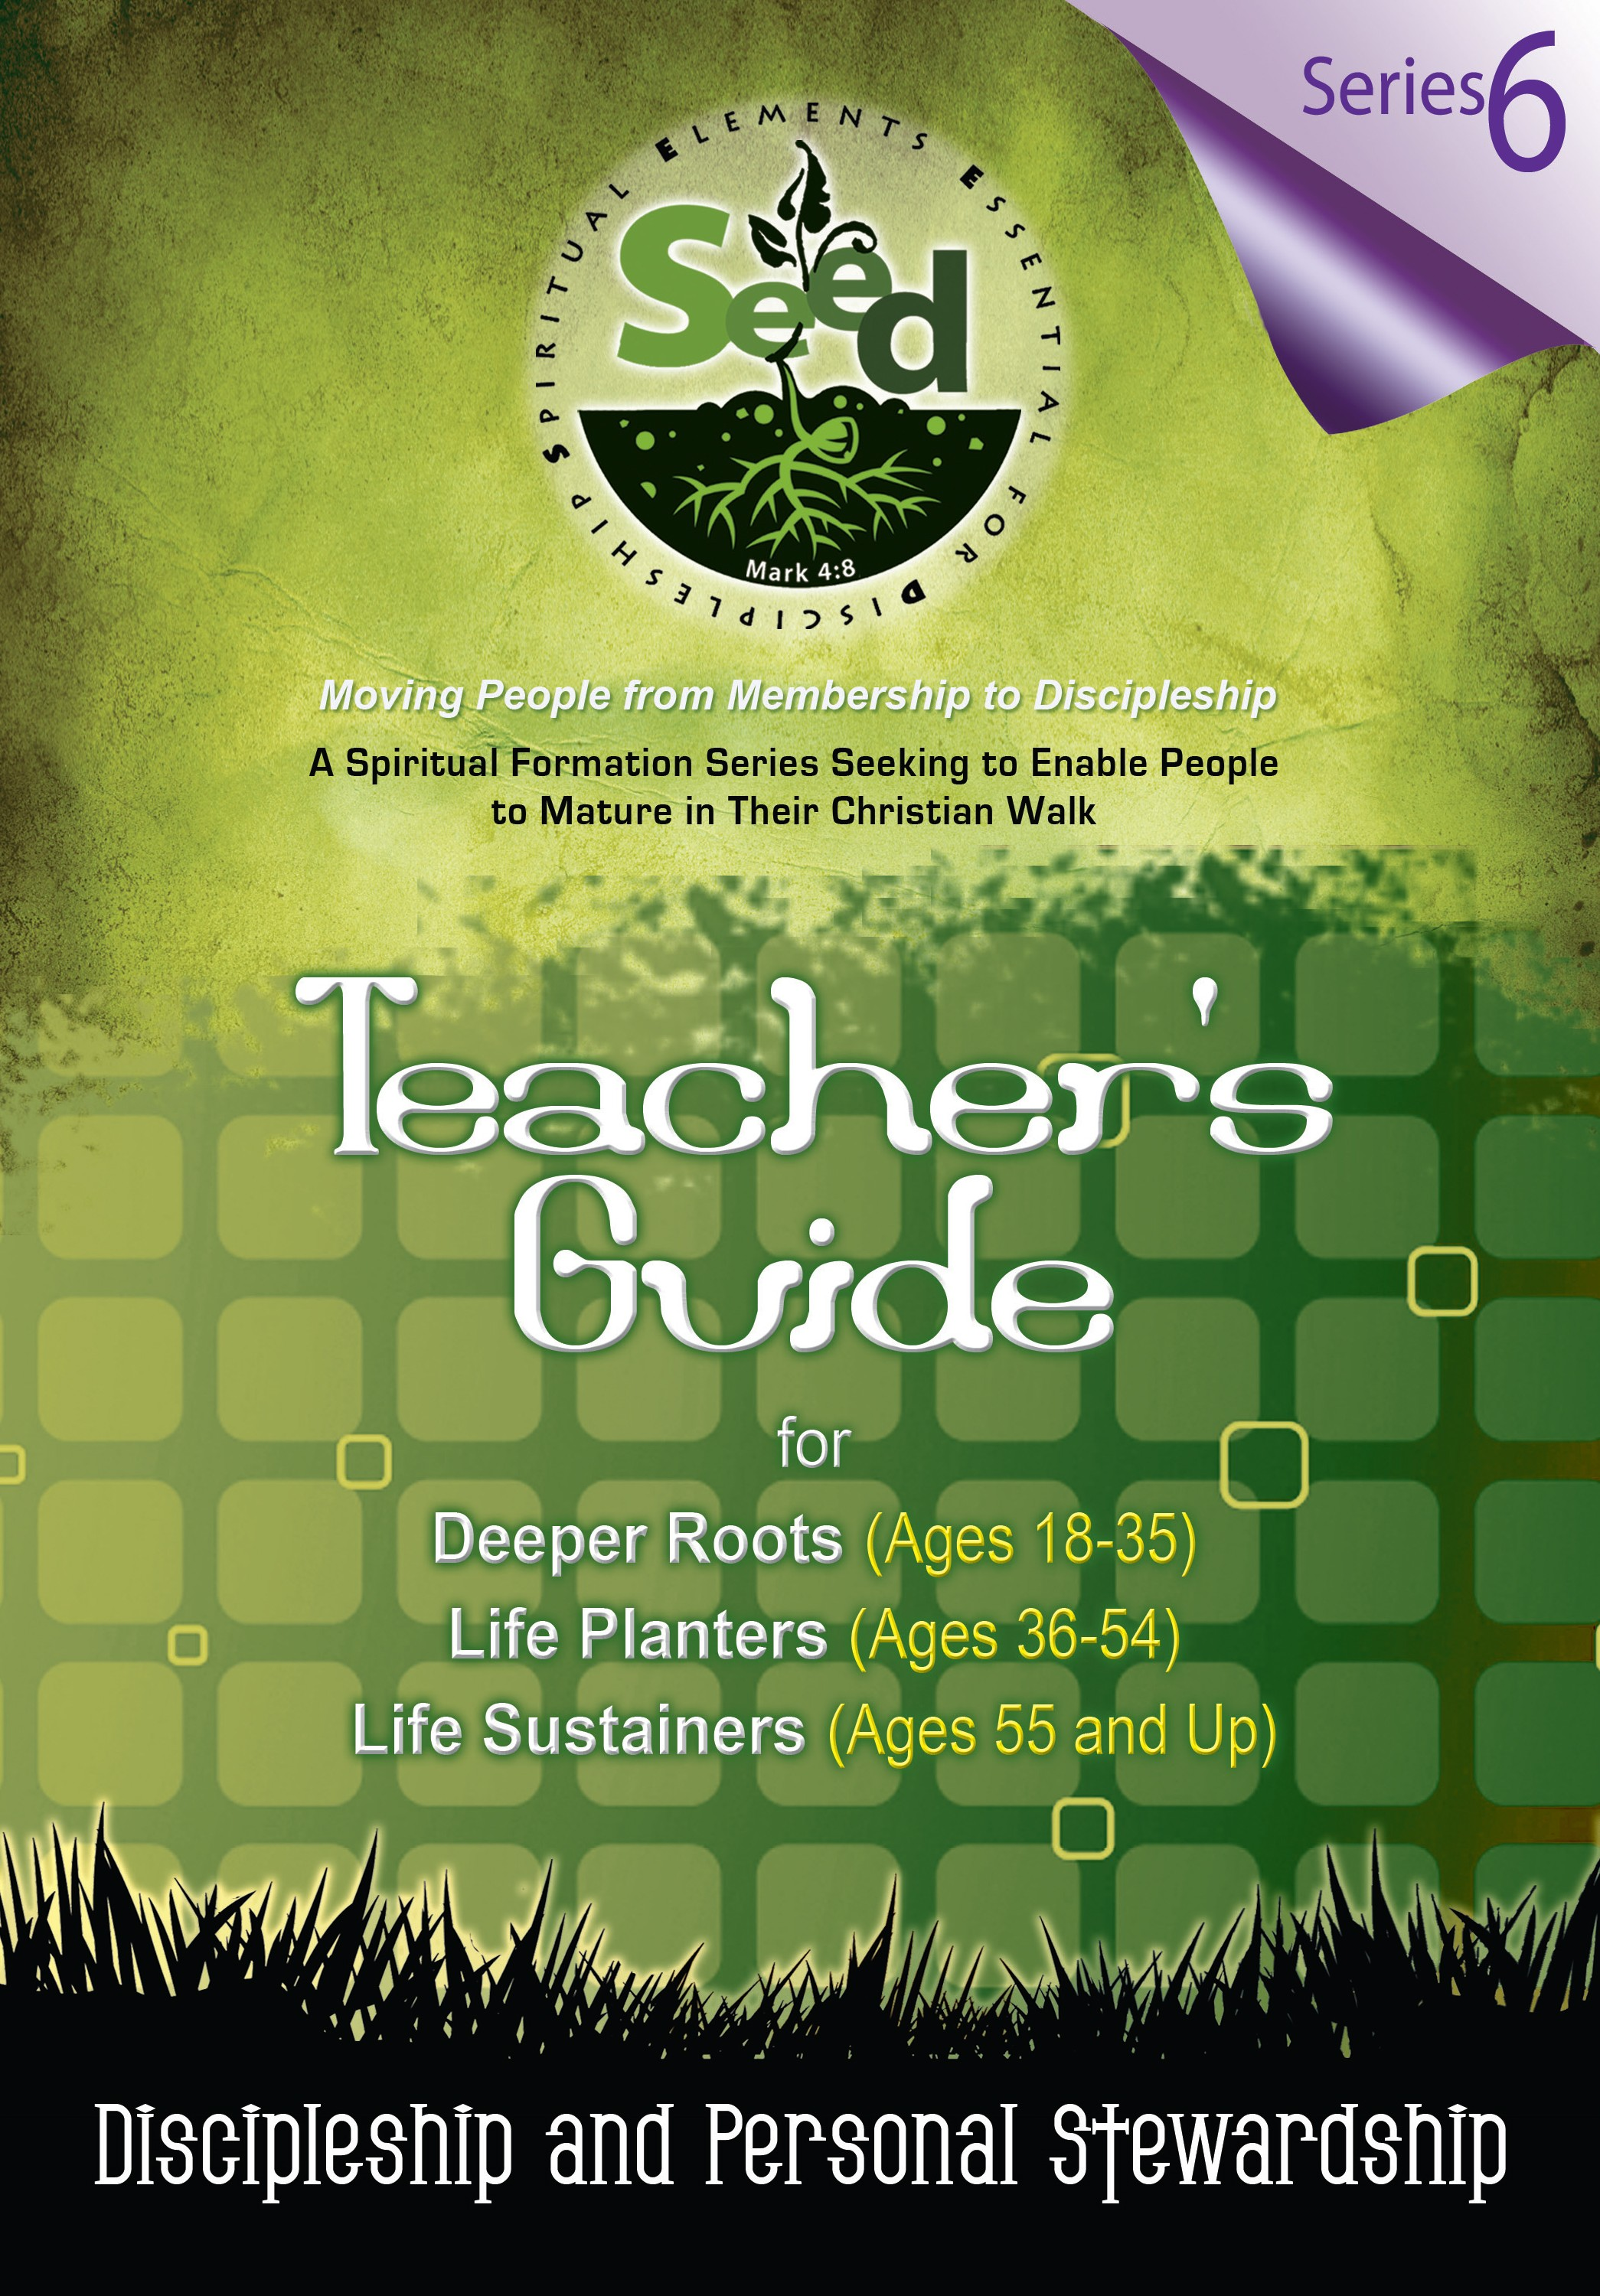 SEED Adult Teacher's Guide: Series 6: Discipleship and Personal Strewardship